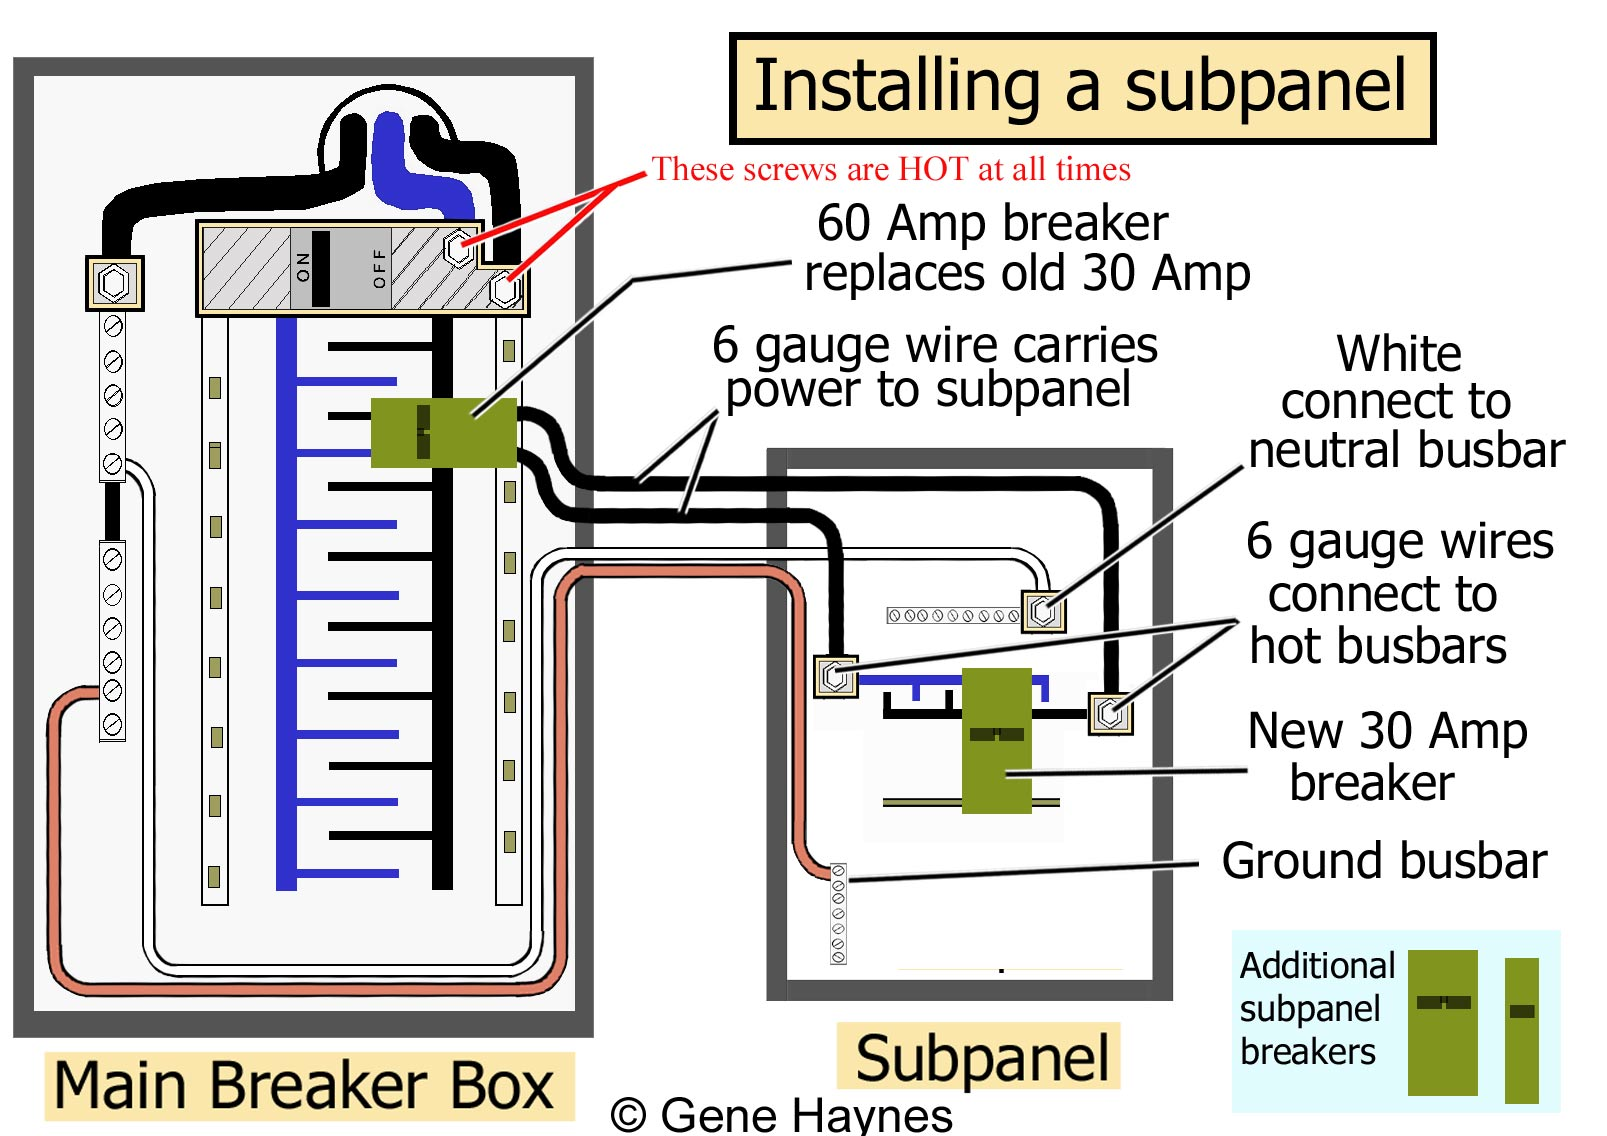 How to install a subpanel how to install main lug see larger 60 amp subpanel with 240volt and 120volt use with both 240volt and 120volt breakers 1 60 150 amp breaker replaces any 240 breaker in main box greentooth Choice Image